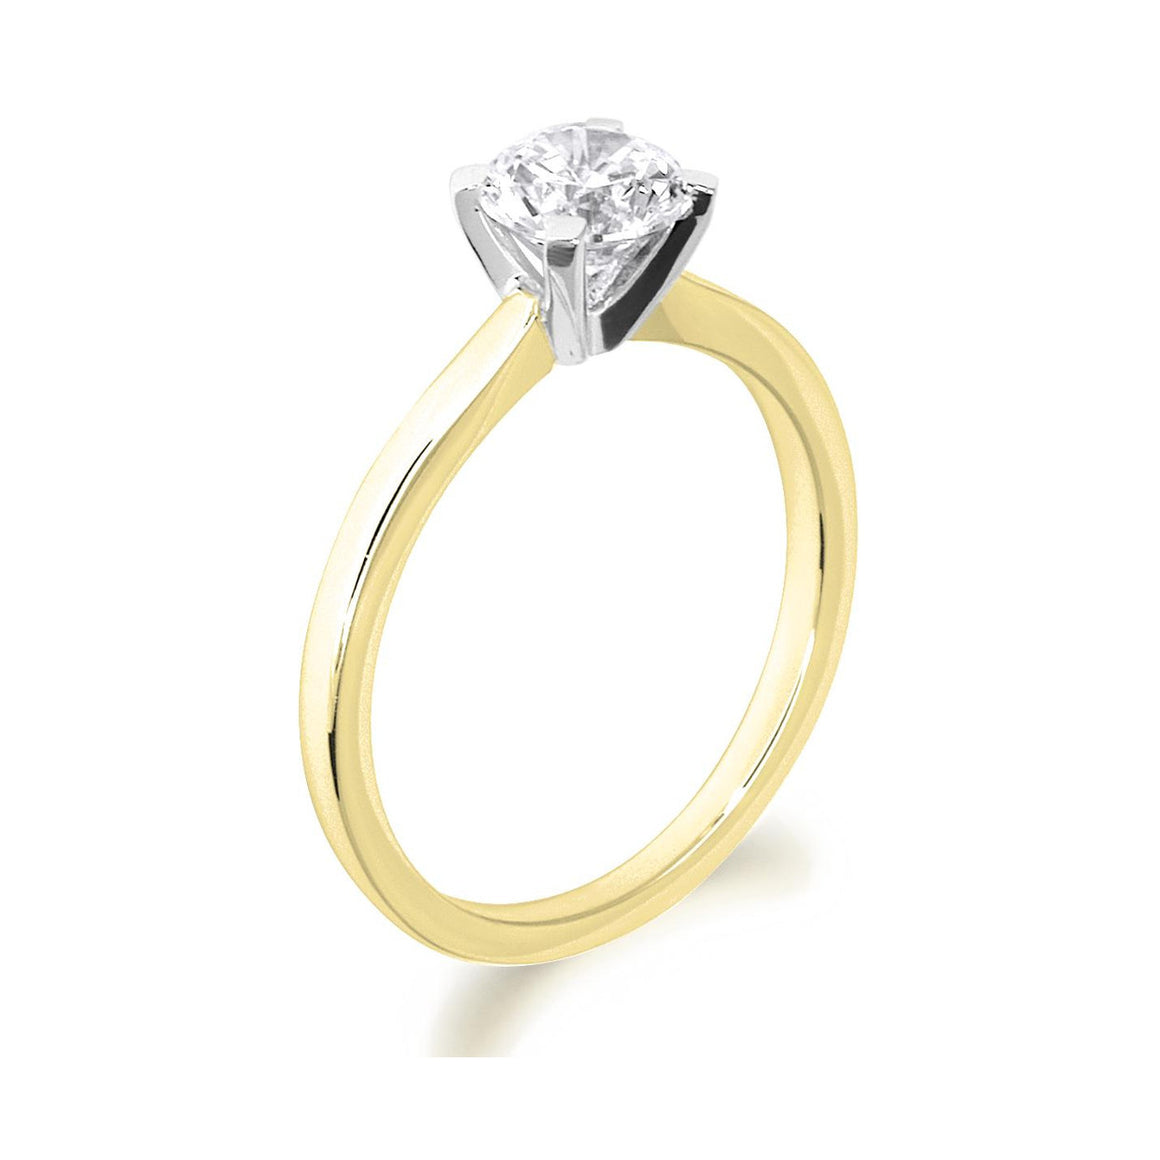 4 Claw Square Claws Brilliant Cut 18ct Yellow Gold Solitaire